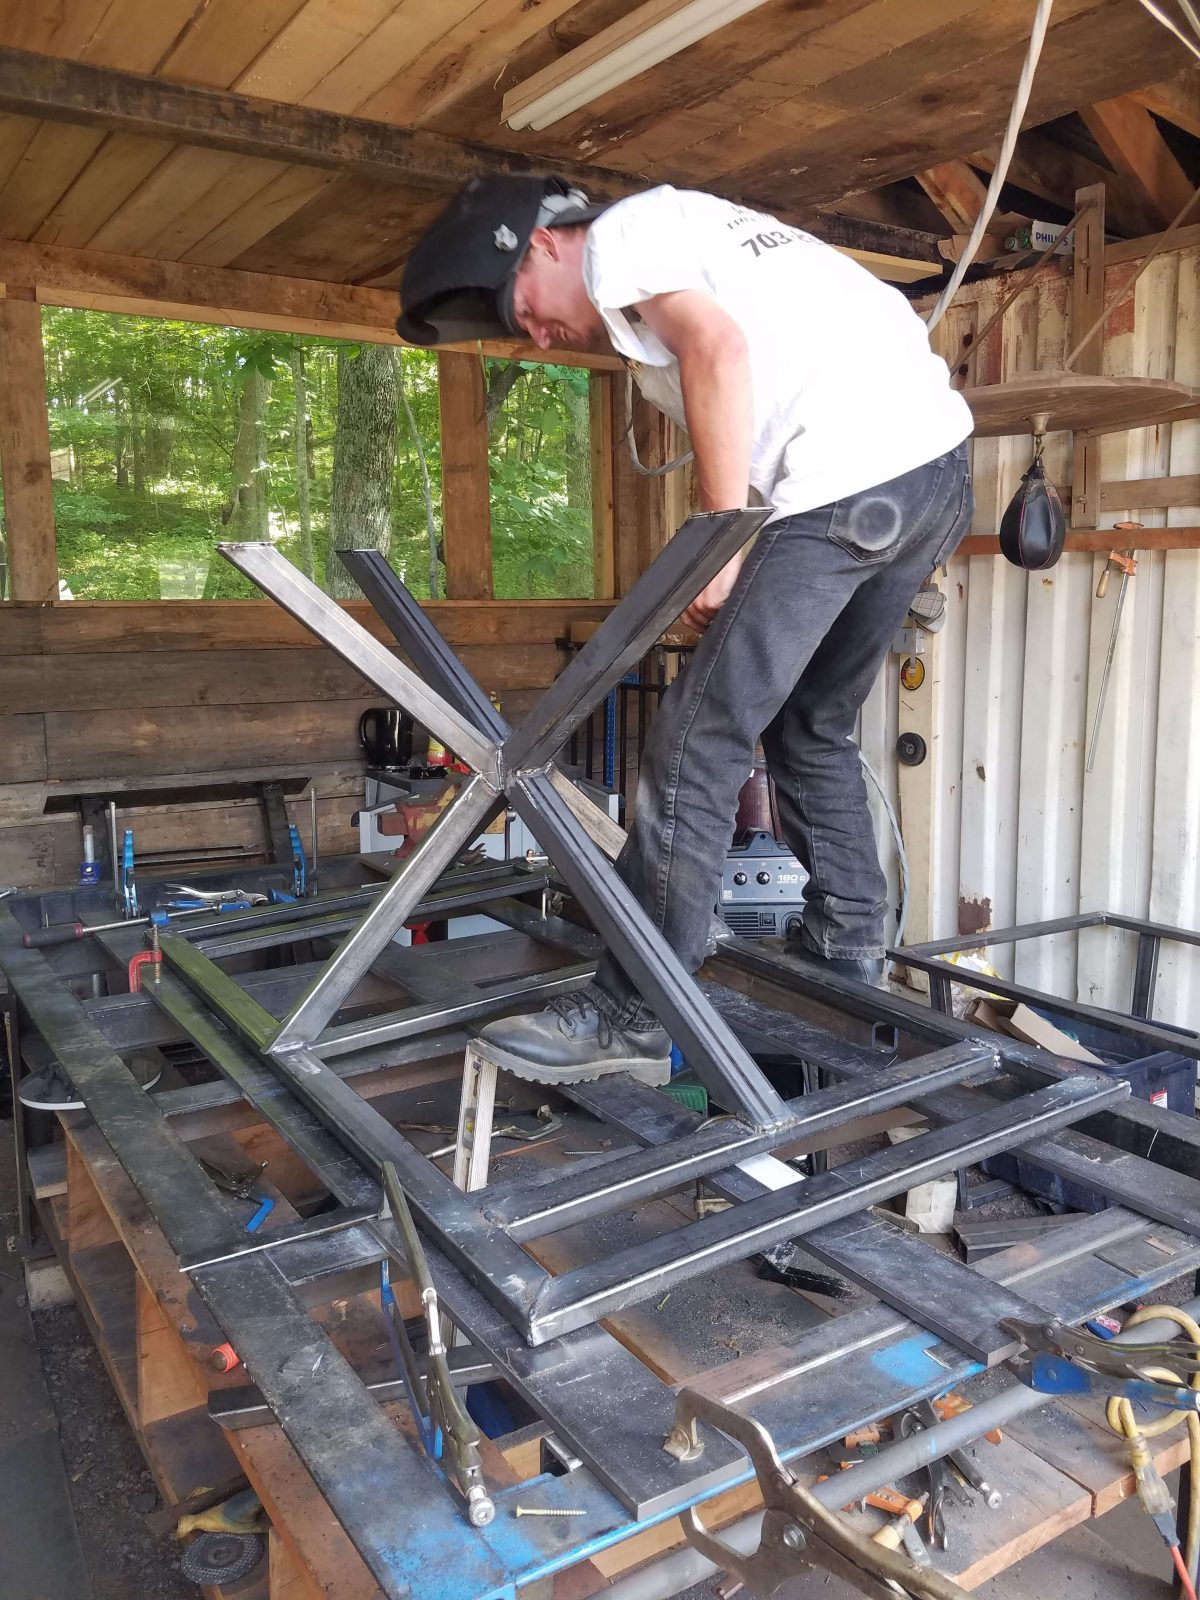 welding on table jumping jack base